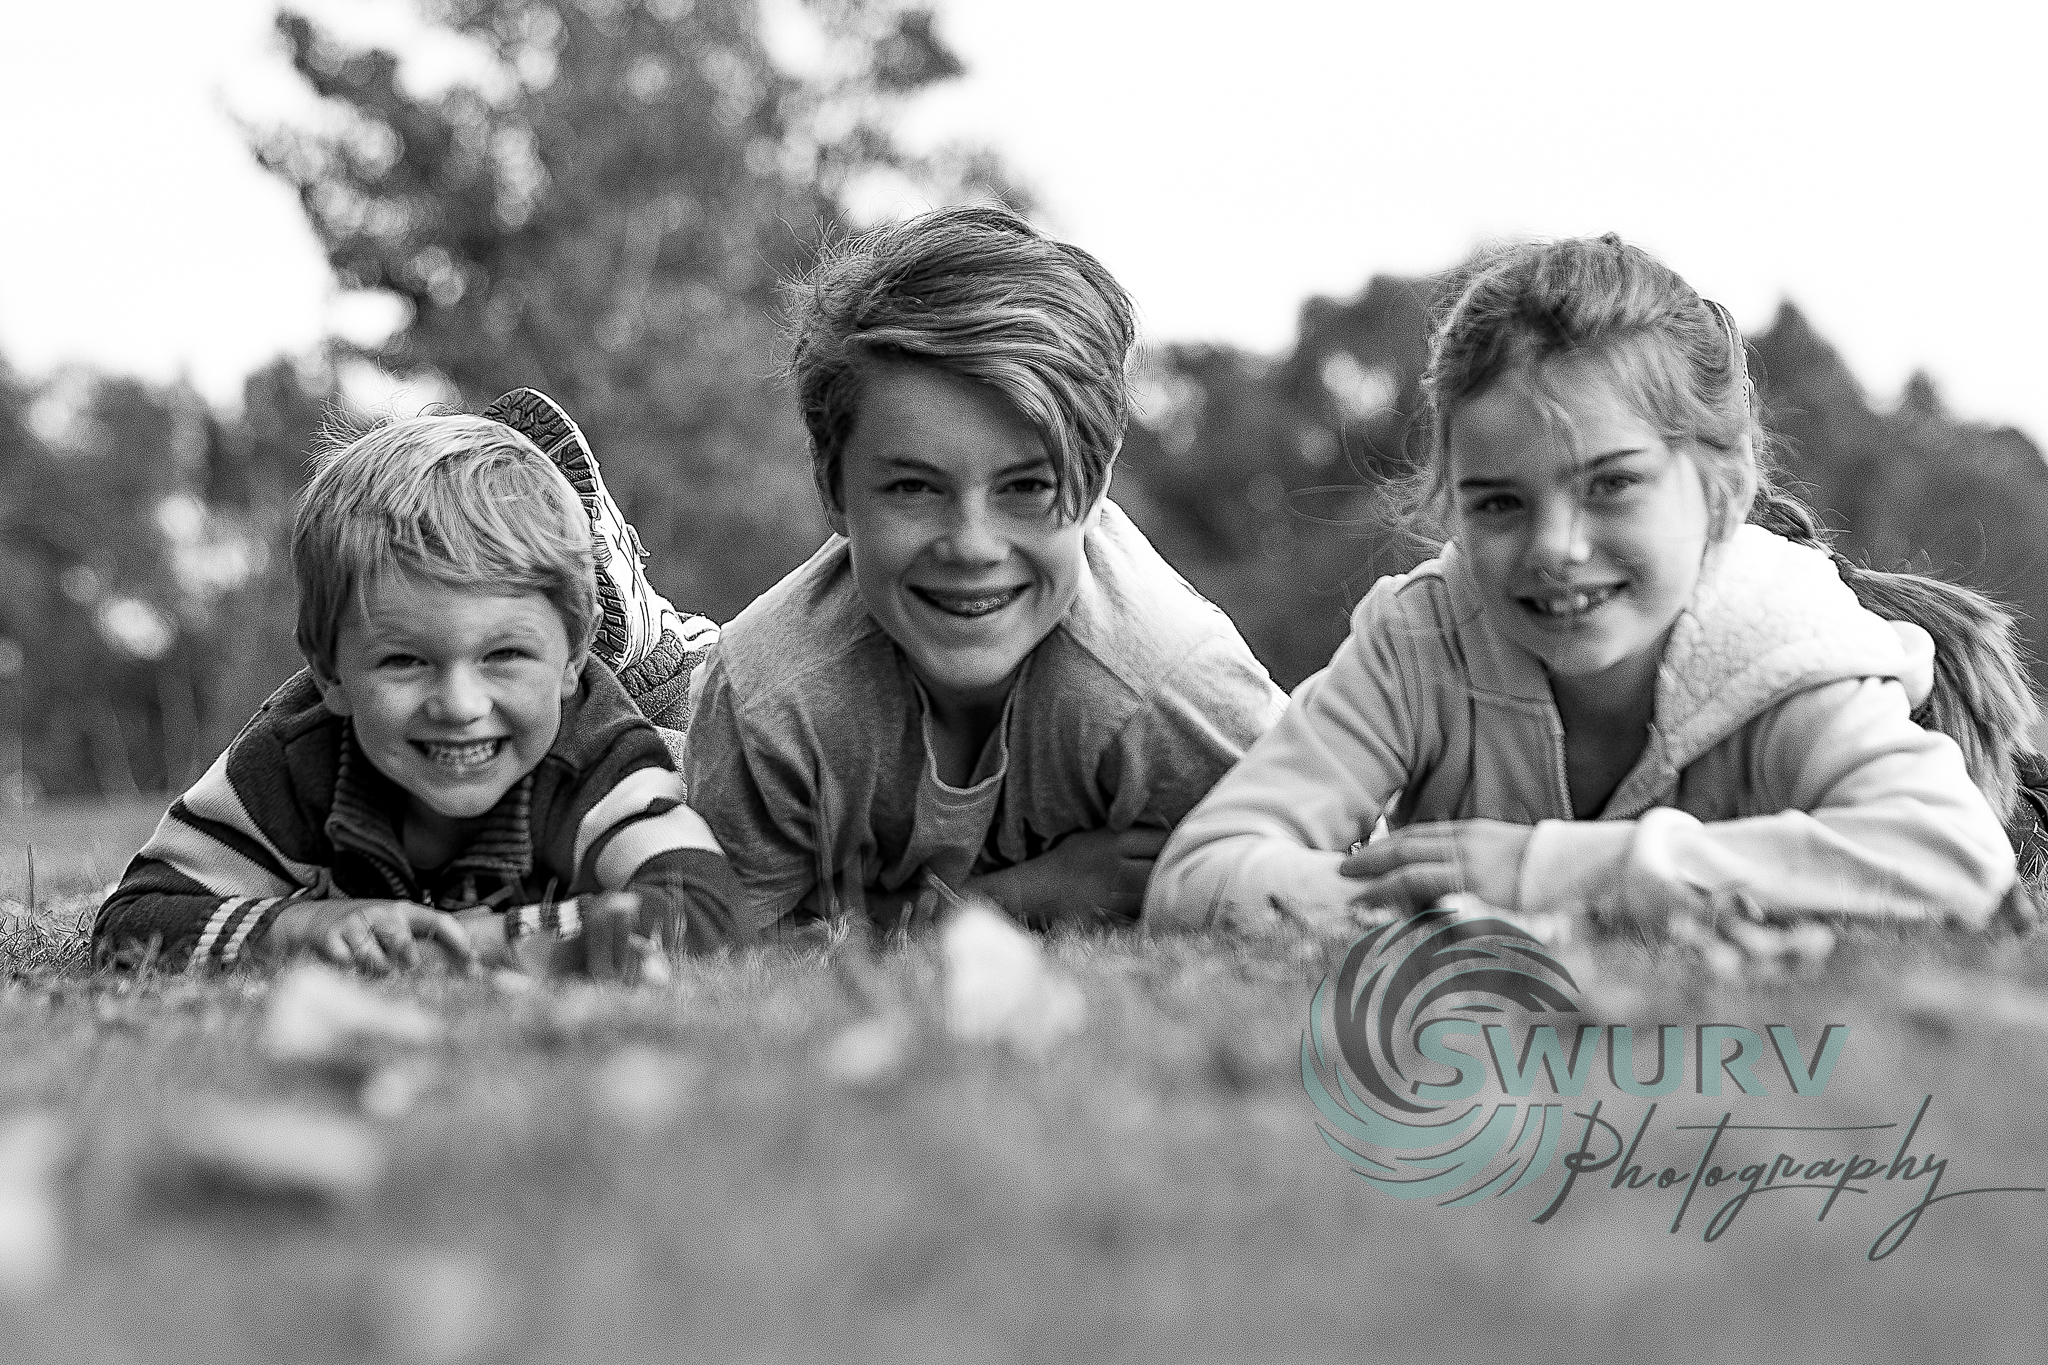 Family Portrait by Swurv Photography